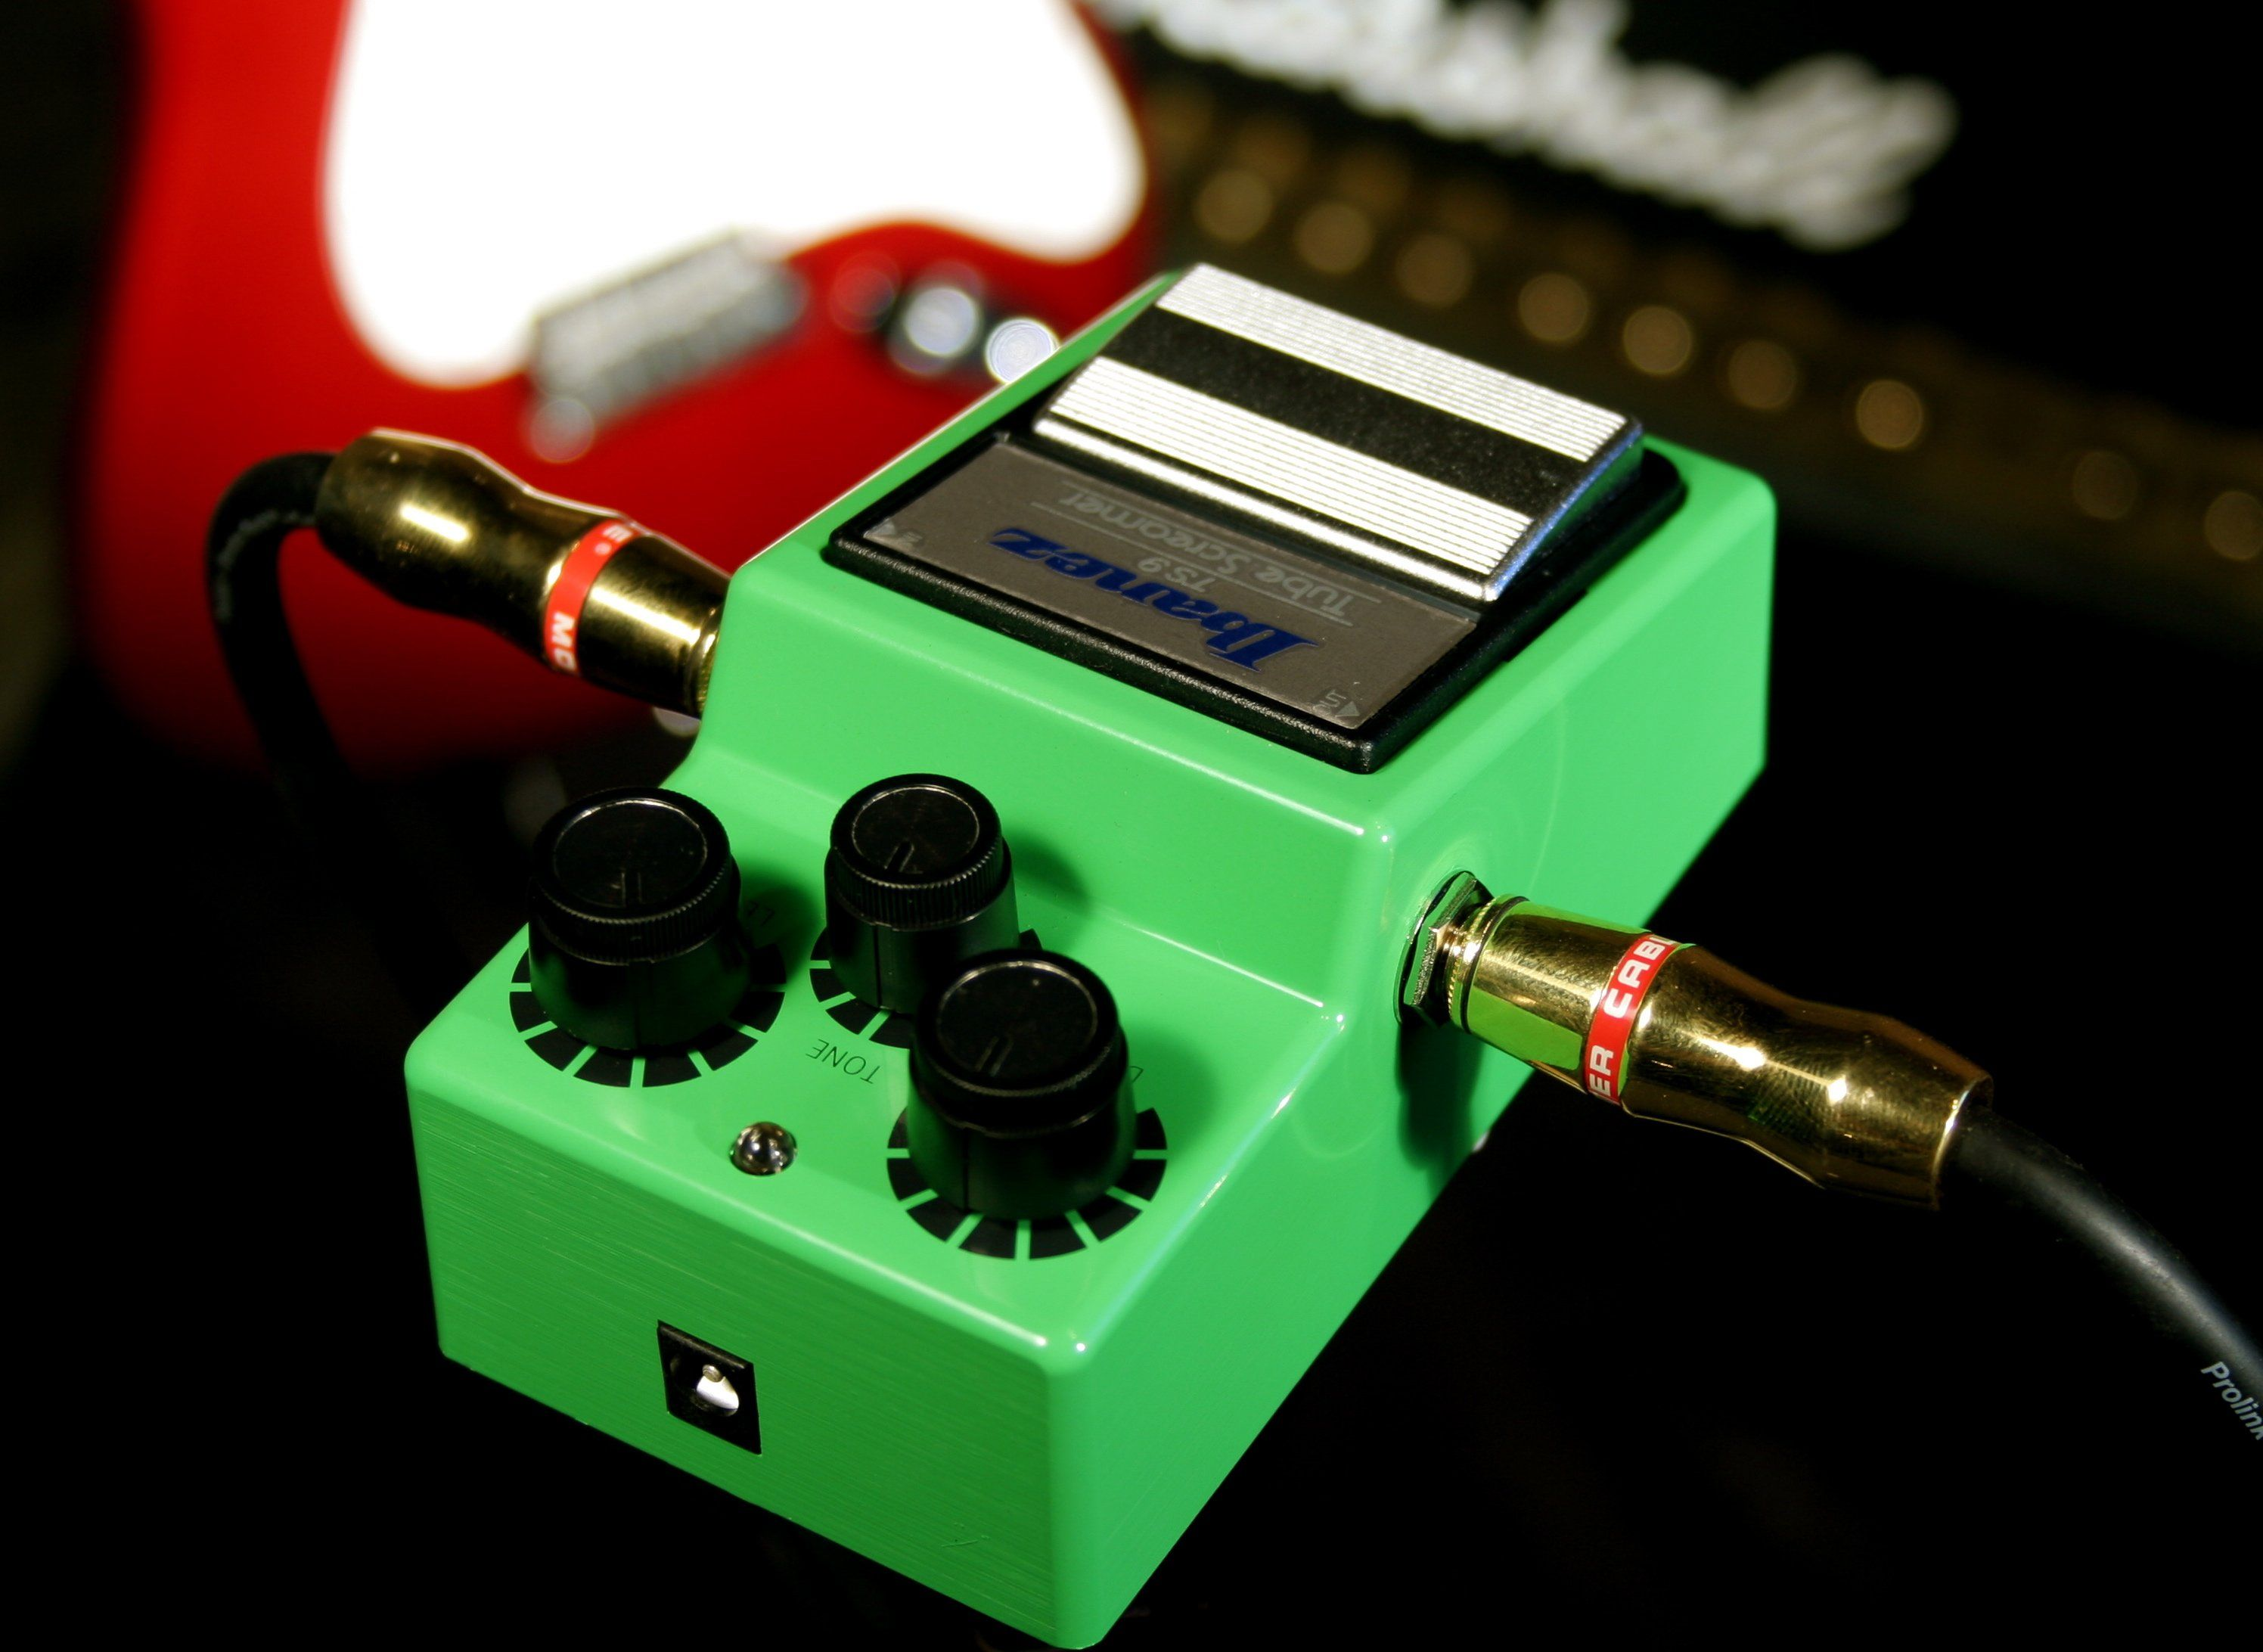 Product Review: Ibanez Tube Screamer TS9 Overdrive Pedal